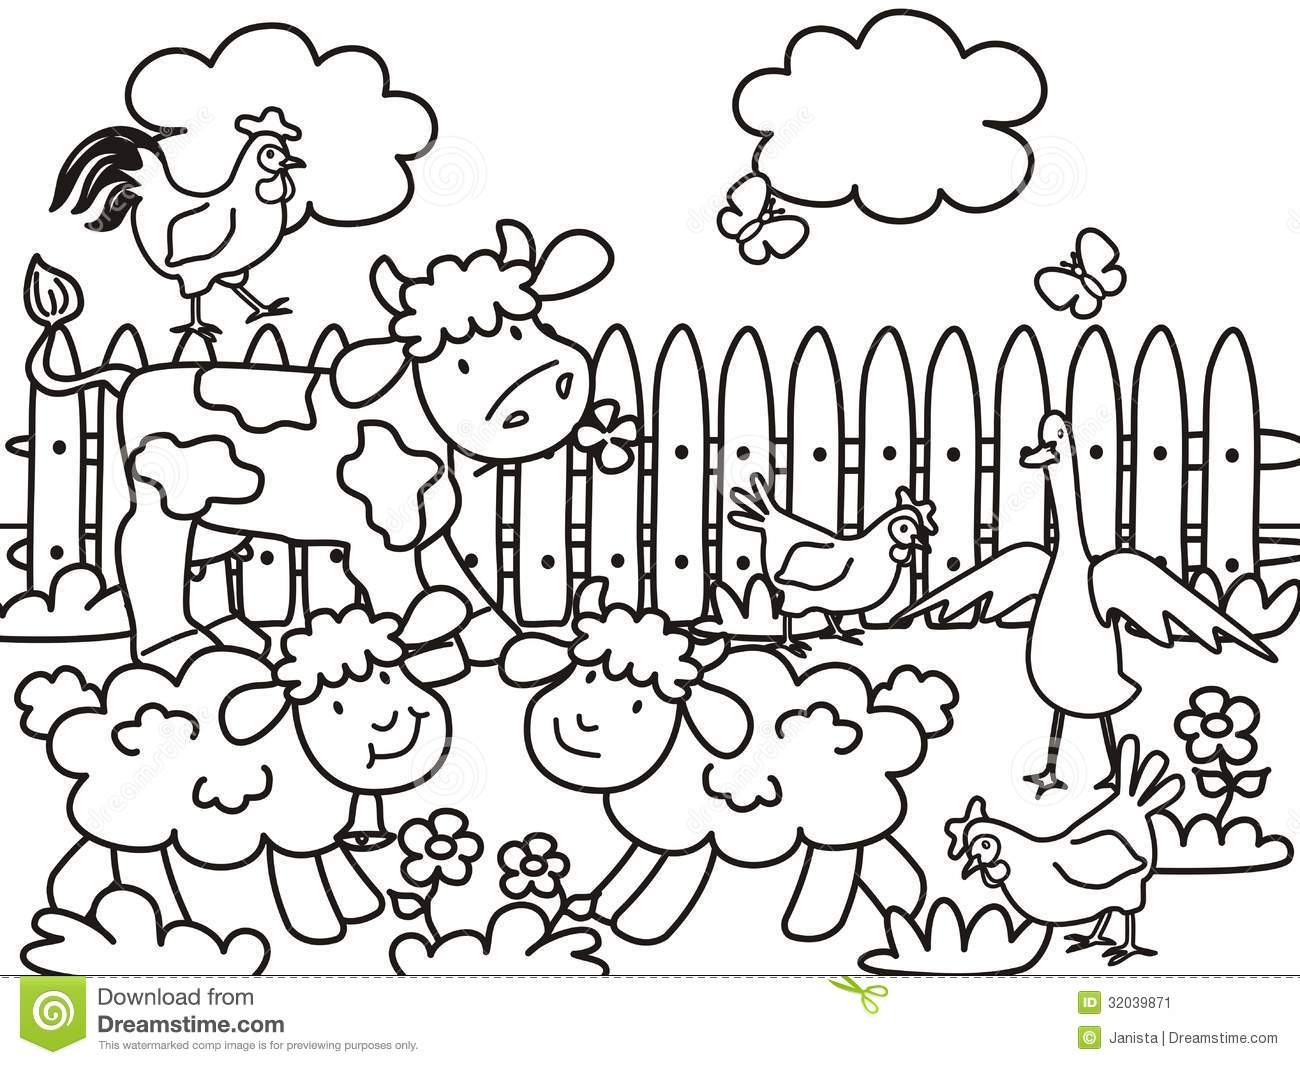 Stock Image Farm Coloring Books Children Life Animals Meadow Image32039871 on free printable bird house plans